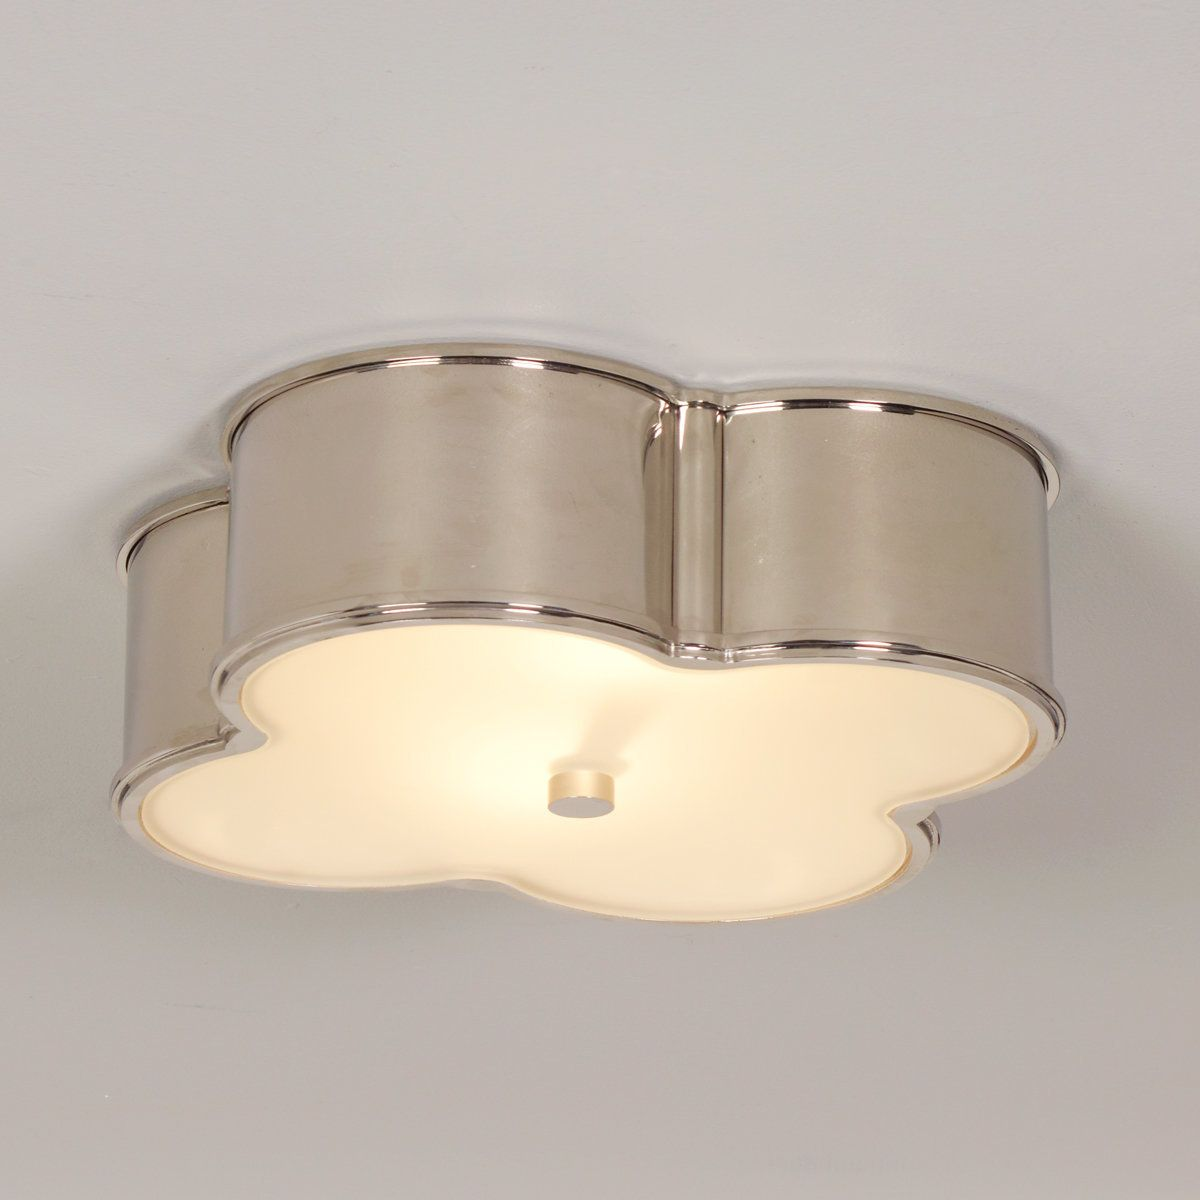 Scalloped Metal Ceiling Light - Large polished_nickel